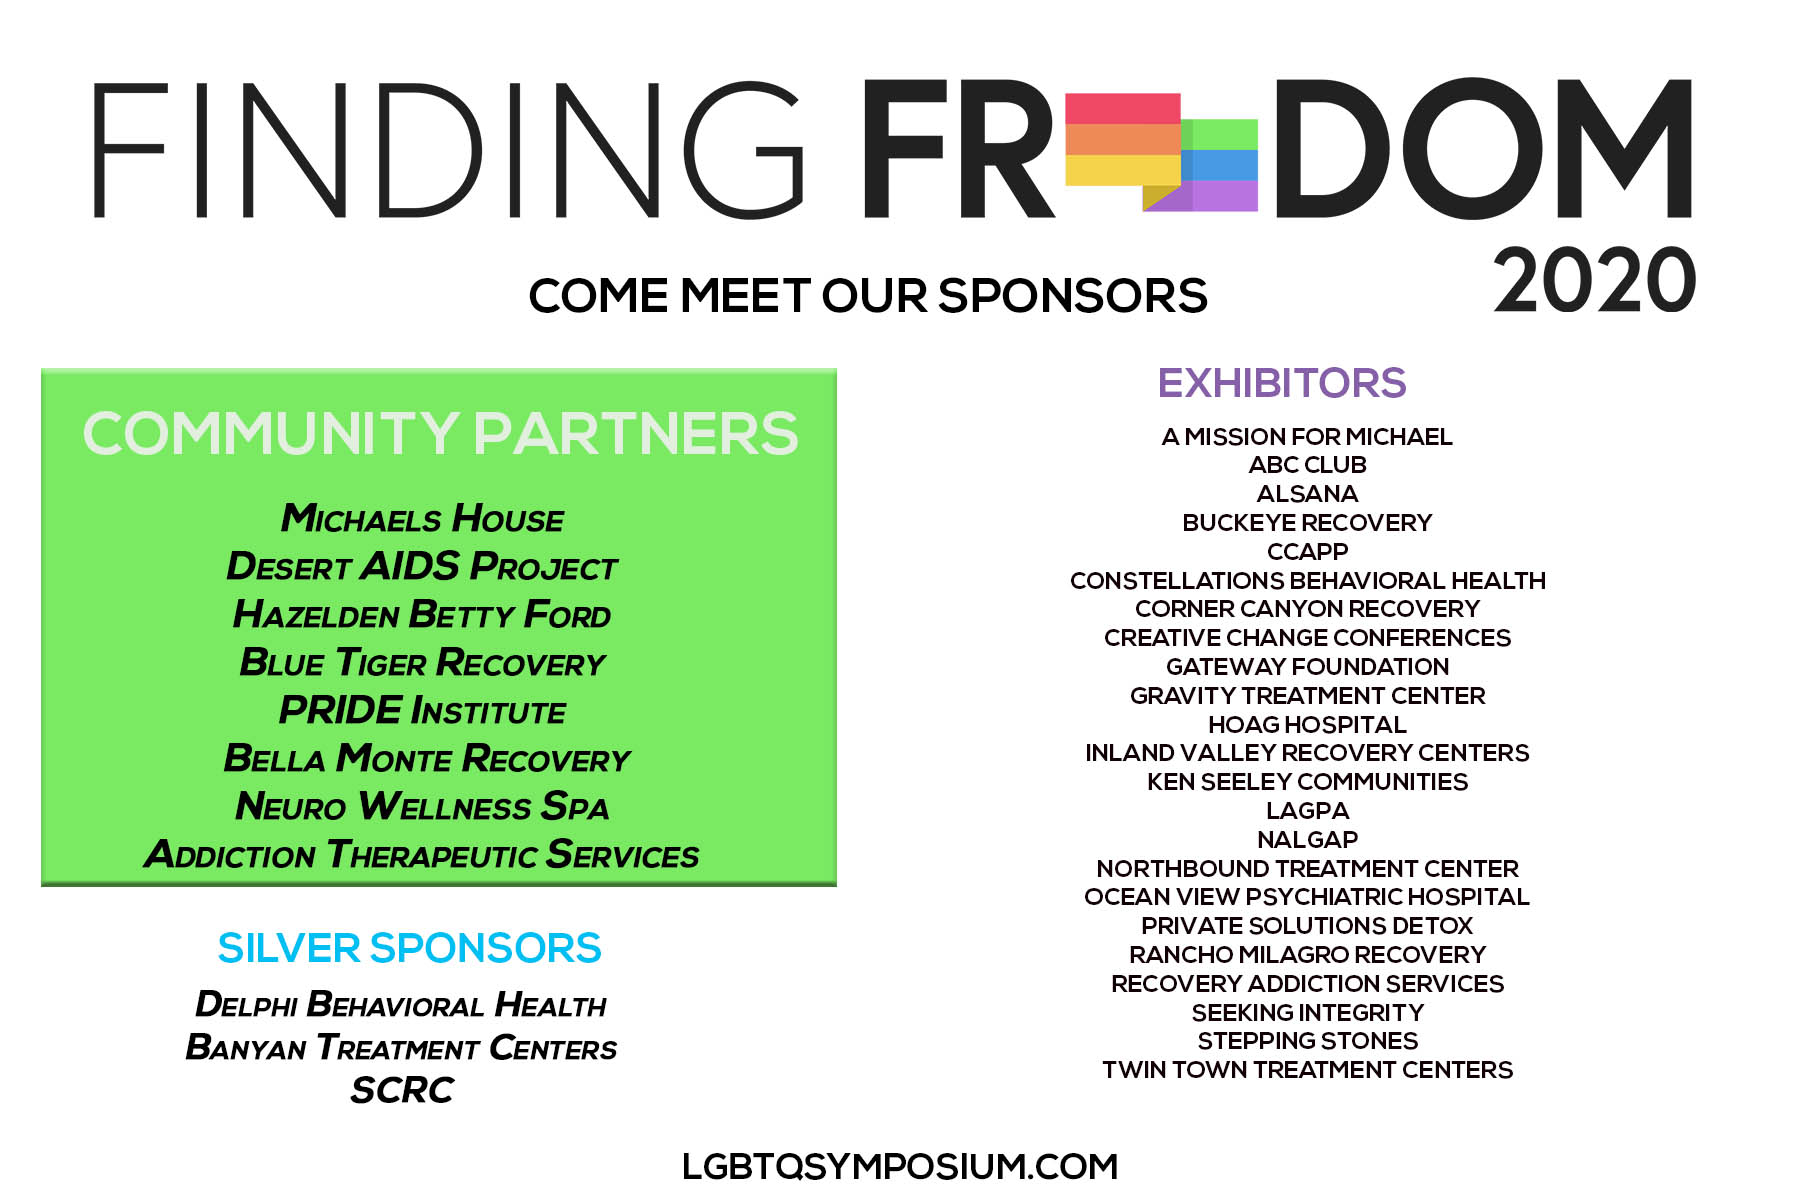 Finding Freedom LGBTQ Symposium